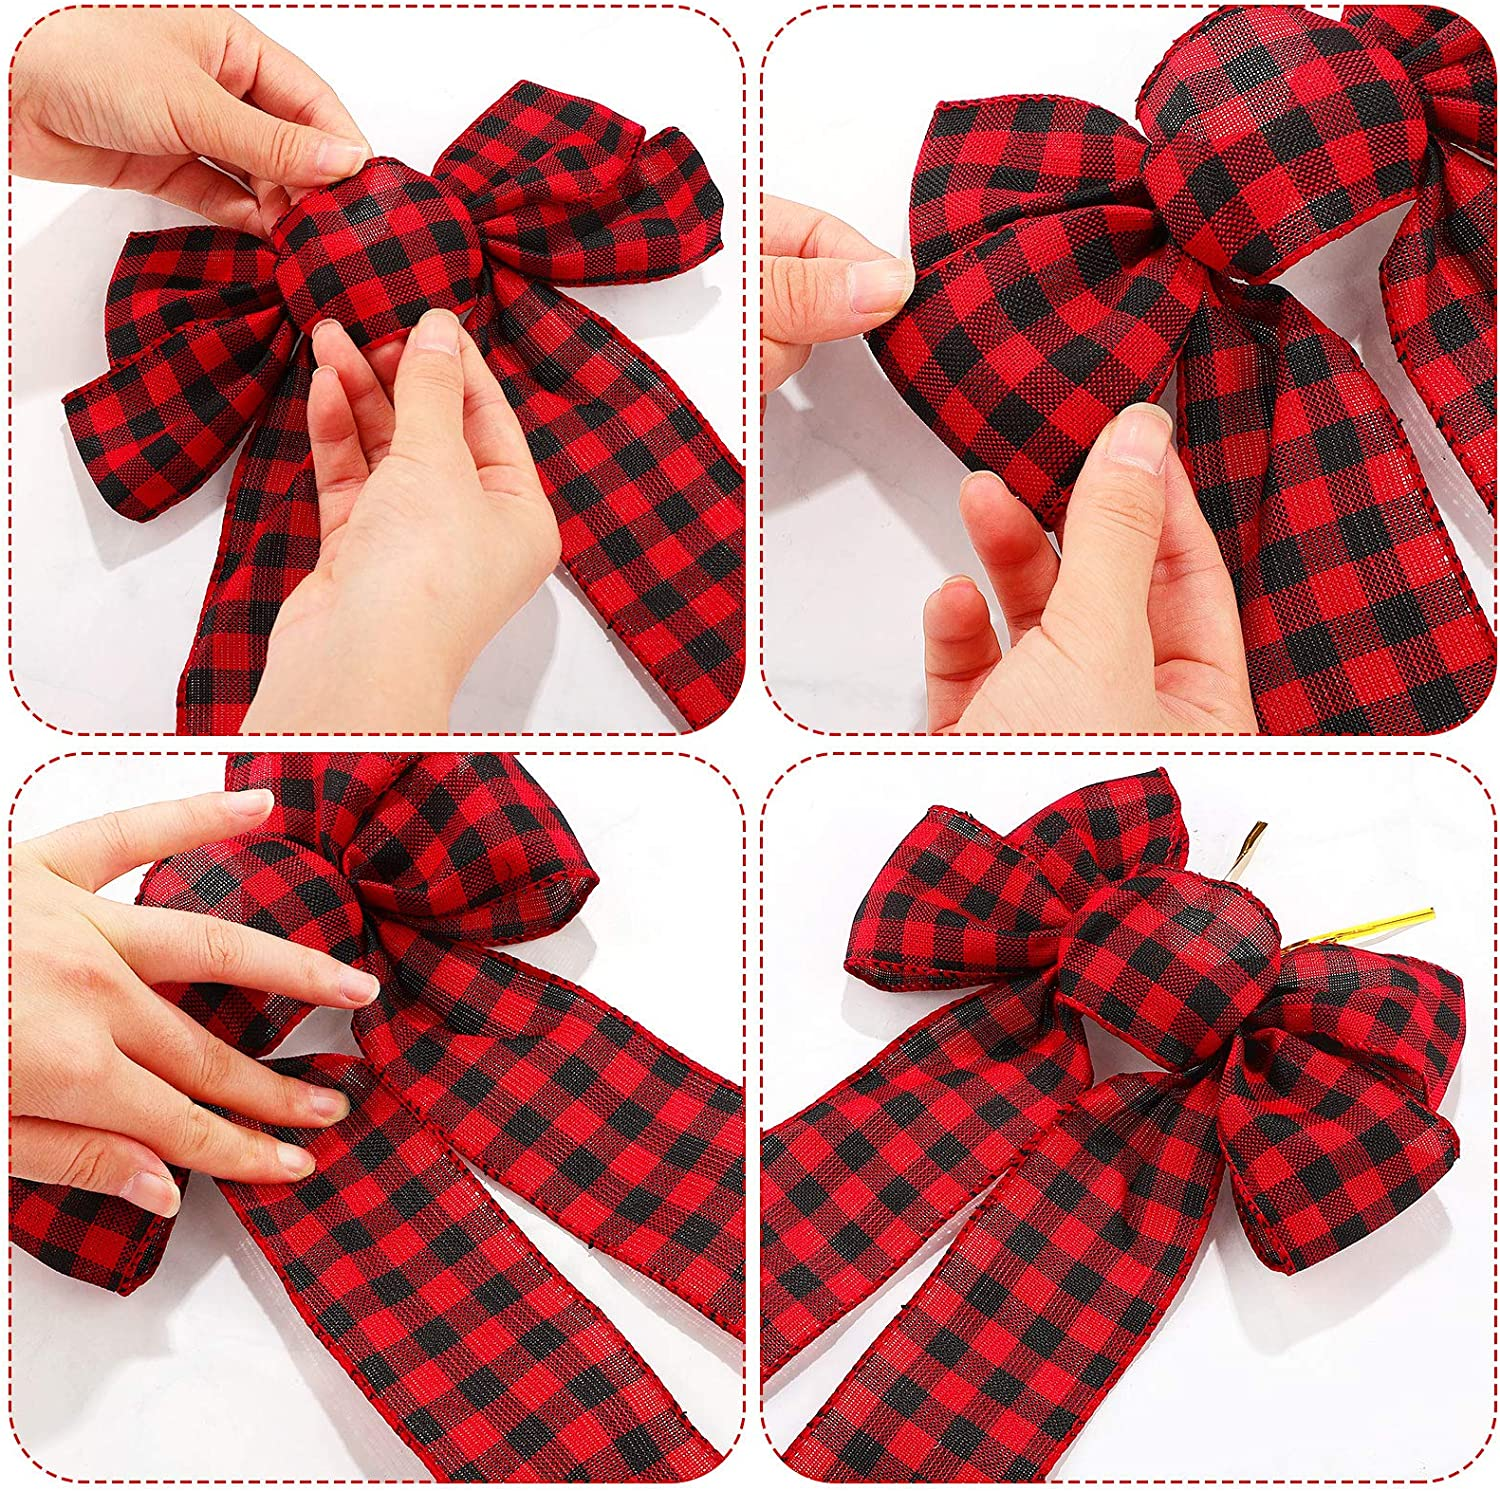 WILLBOND 6 Pieces Christmas Red Buffalo Plaid Bows Ornaments Christmas Tree Bows Christmas Wreath Bow for Christmas Outdoor Decorations